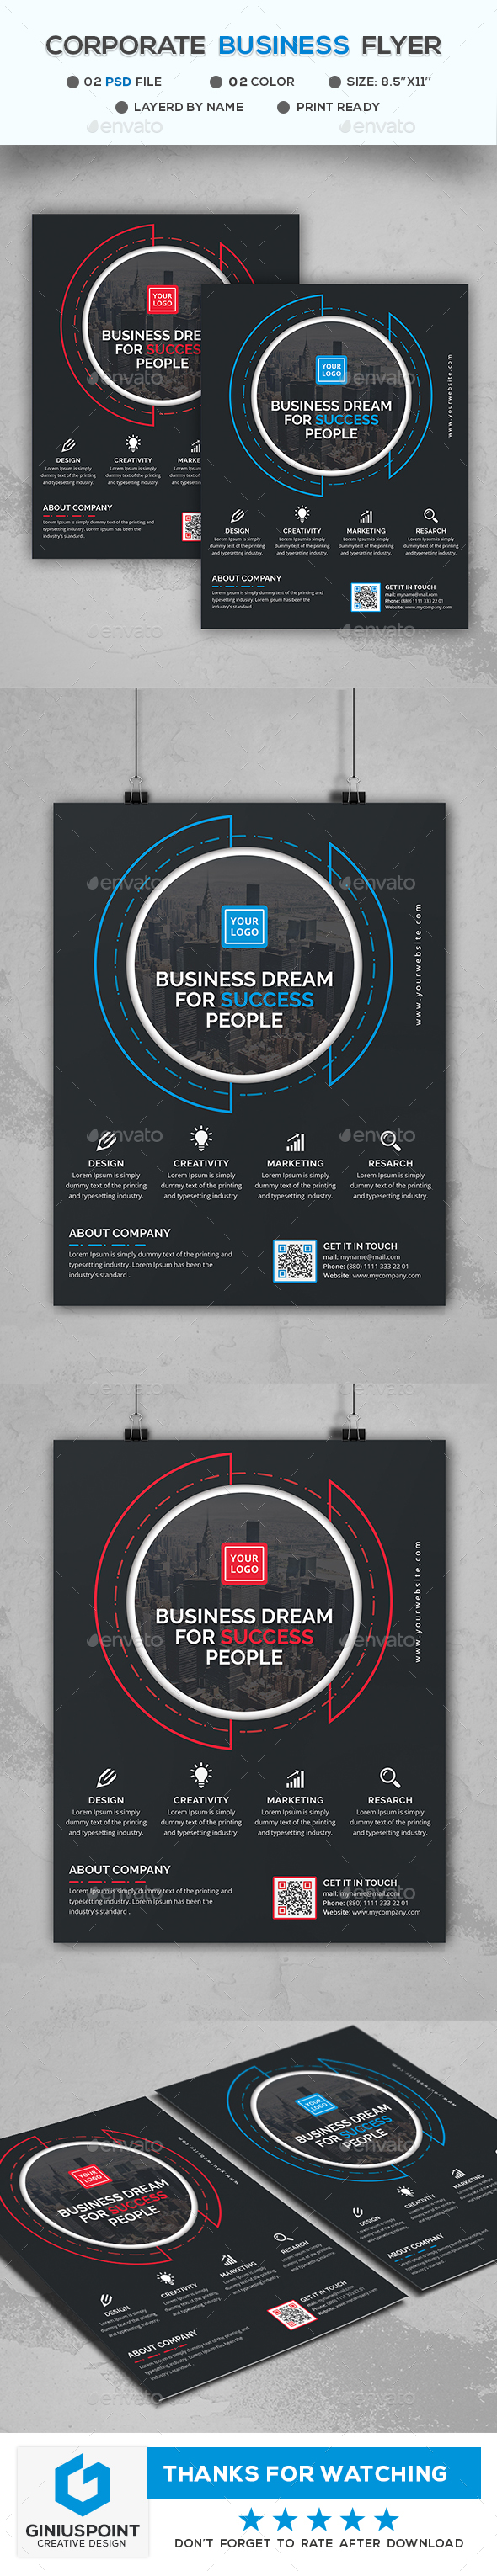 Corporate Business Flyer - Flyers Print Templates